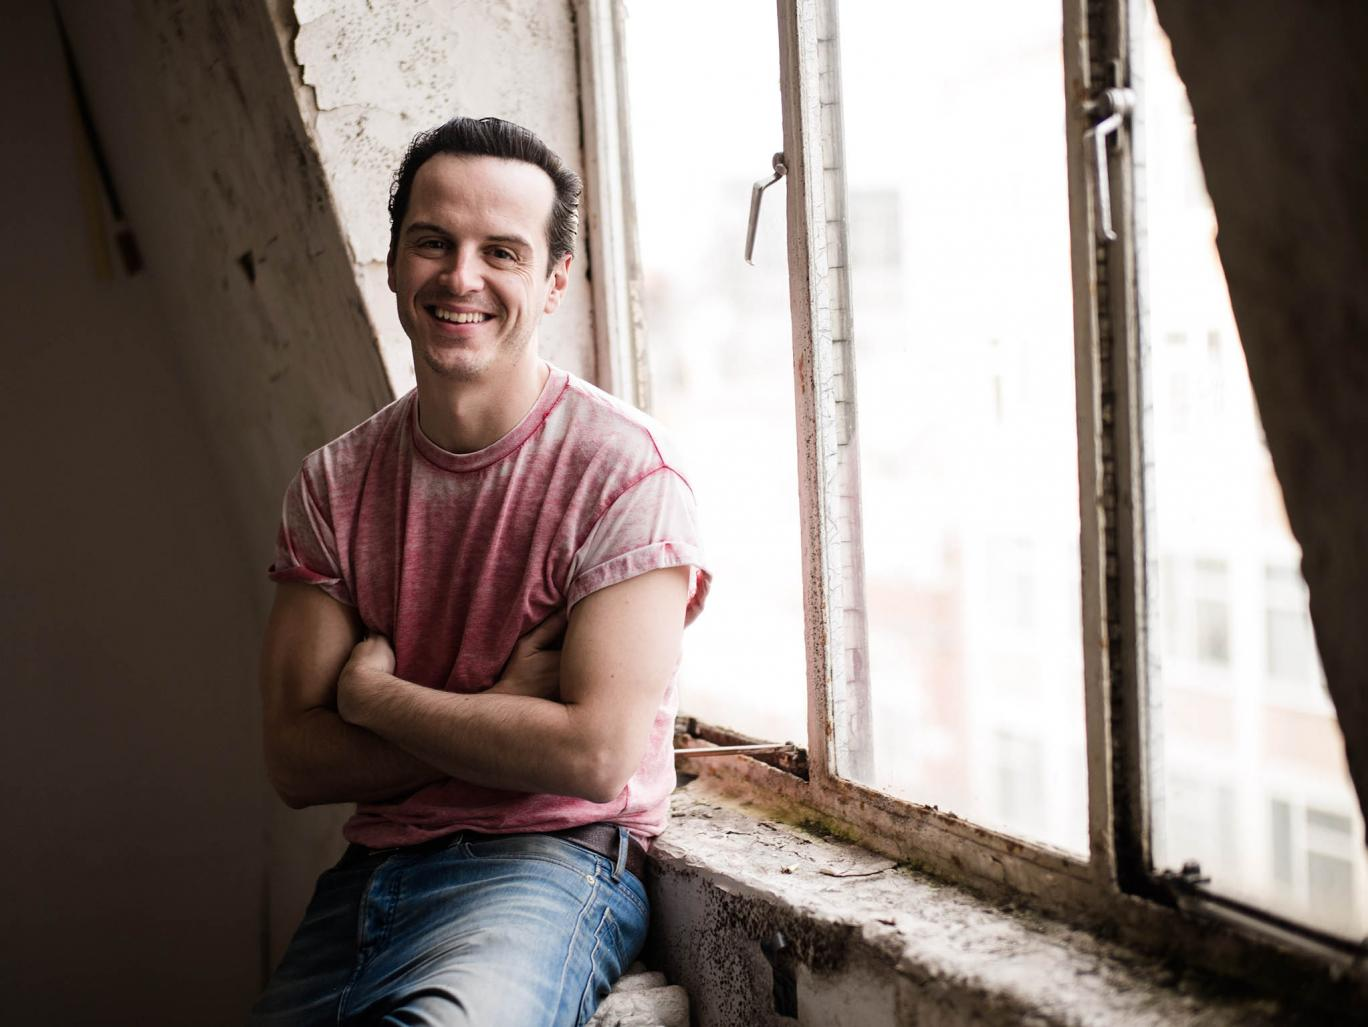 ANDREW SCOTT CAUGHT IN ATTIC WEARING T-SHIRT